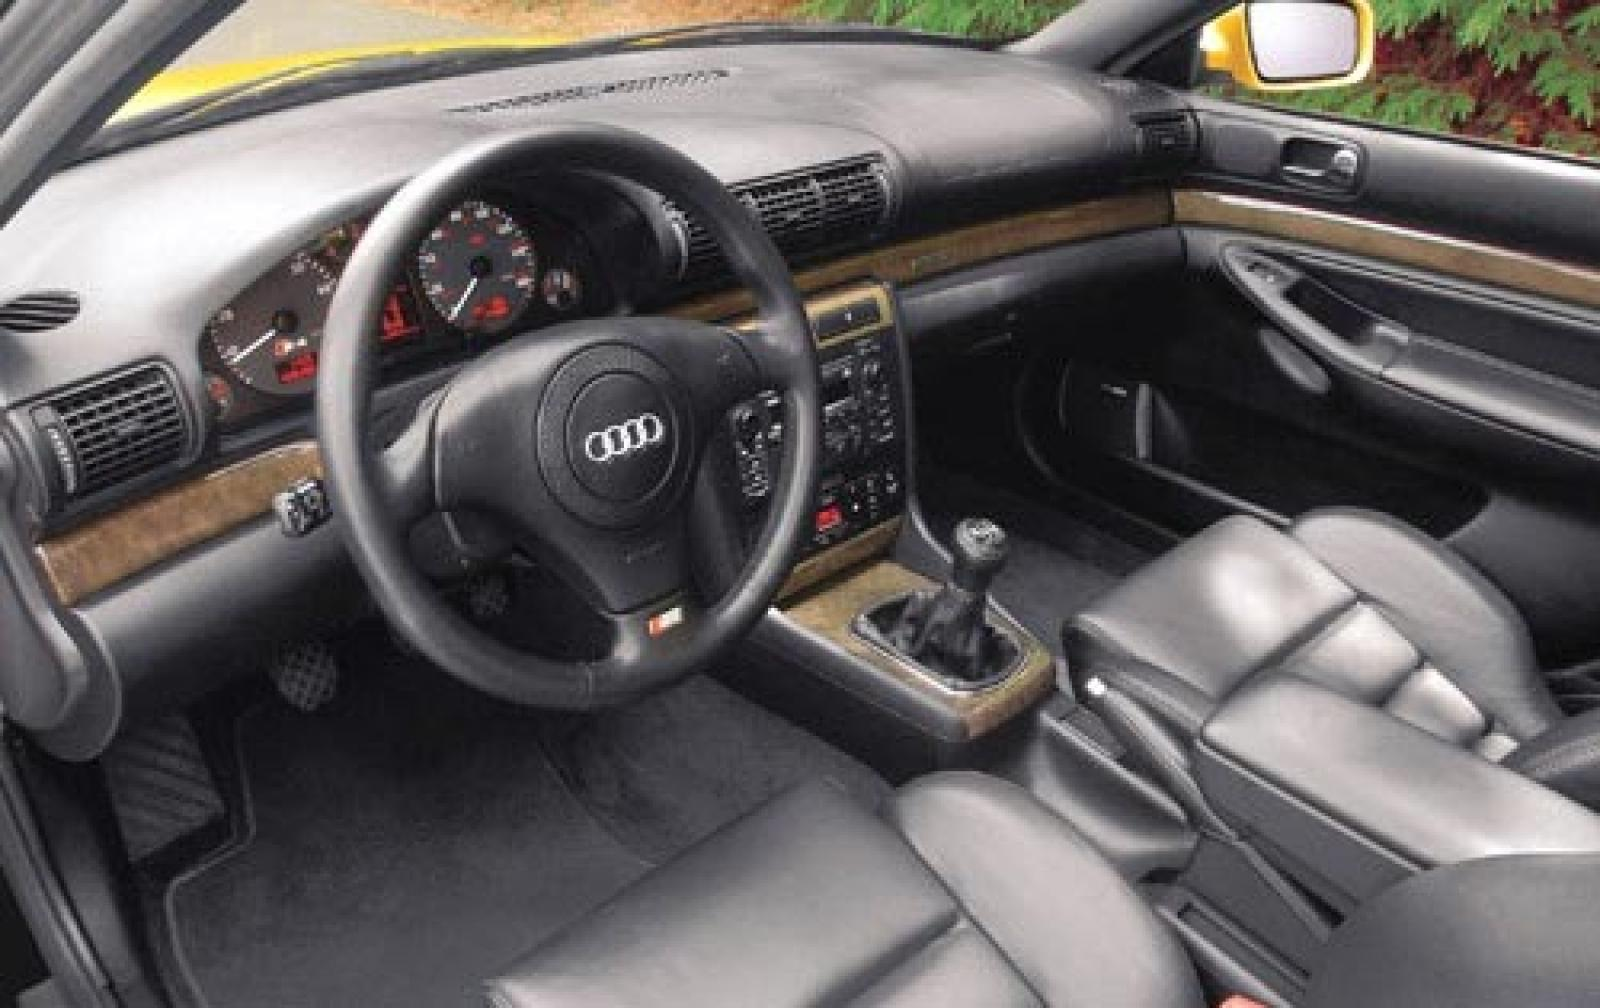 2001 audi s4 information and photos zombiedrive. Black Bedroom Furniture Sets. Home Design Ideas